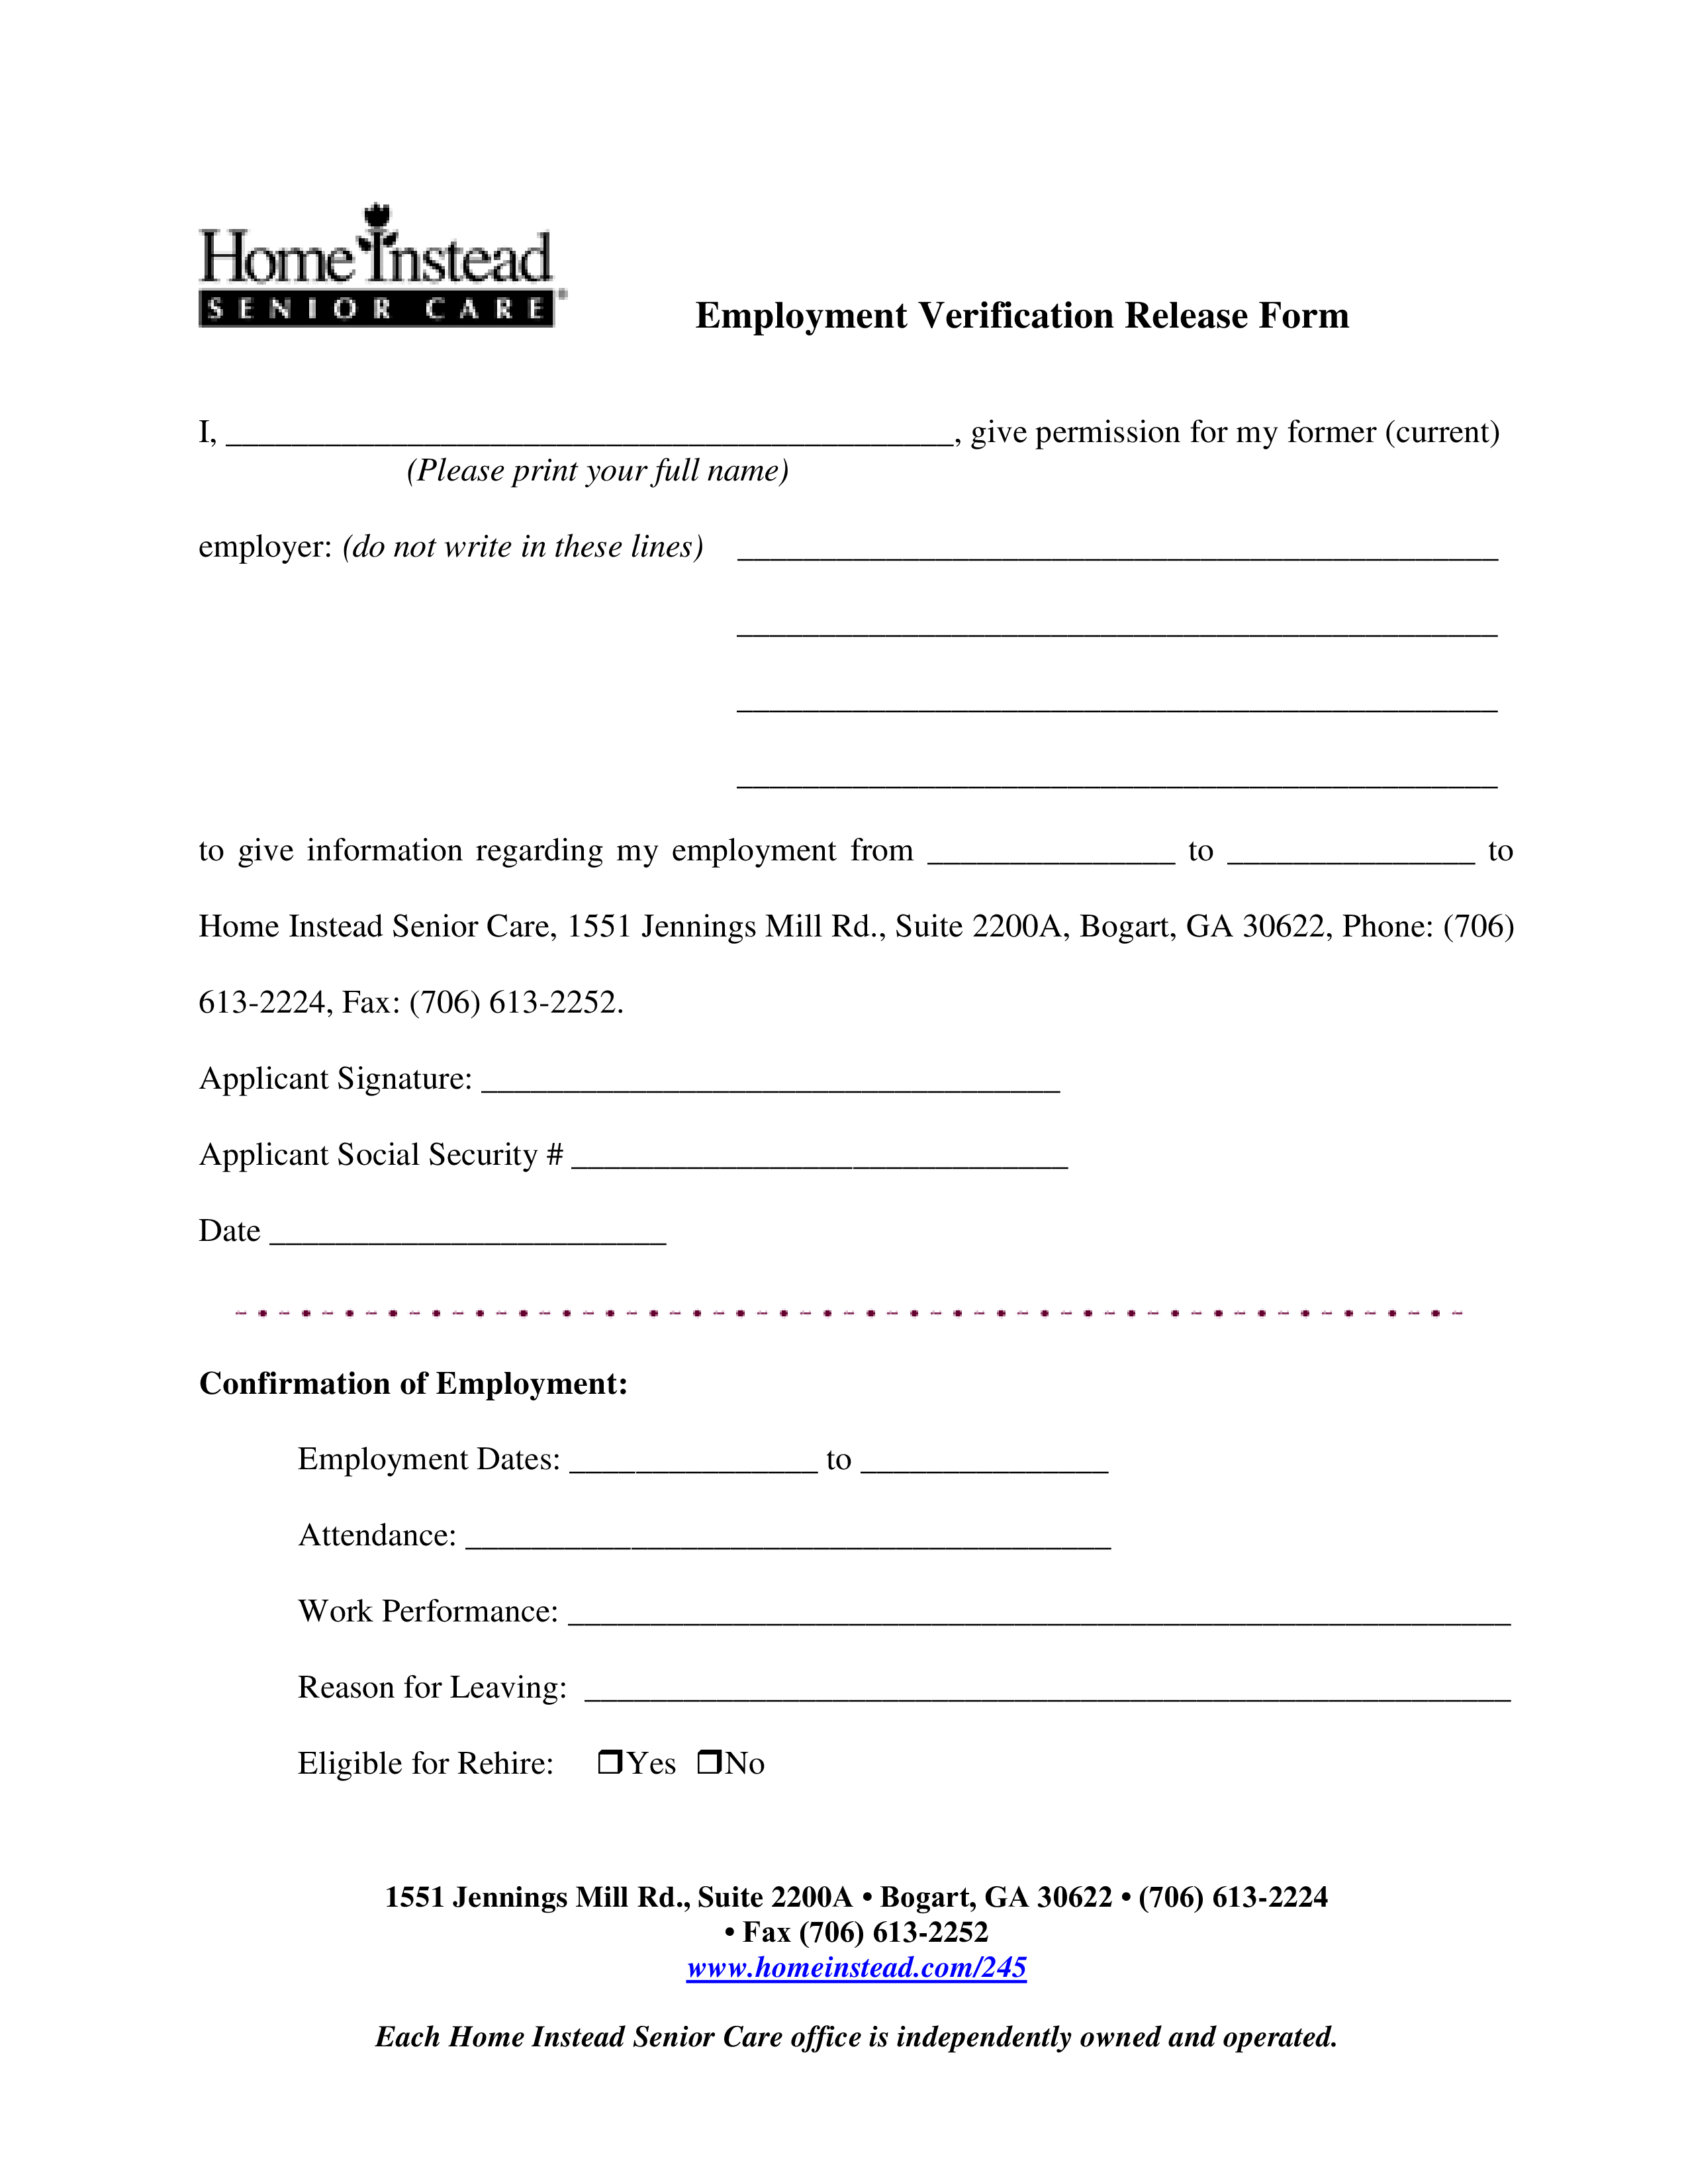 Employment Verification Release Form Templates At